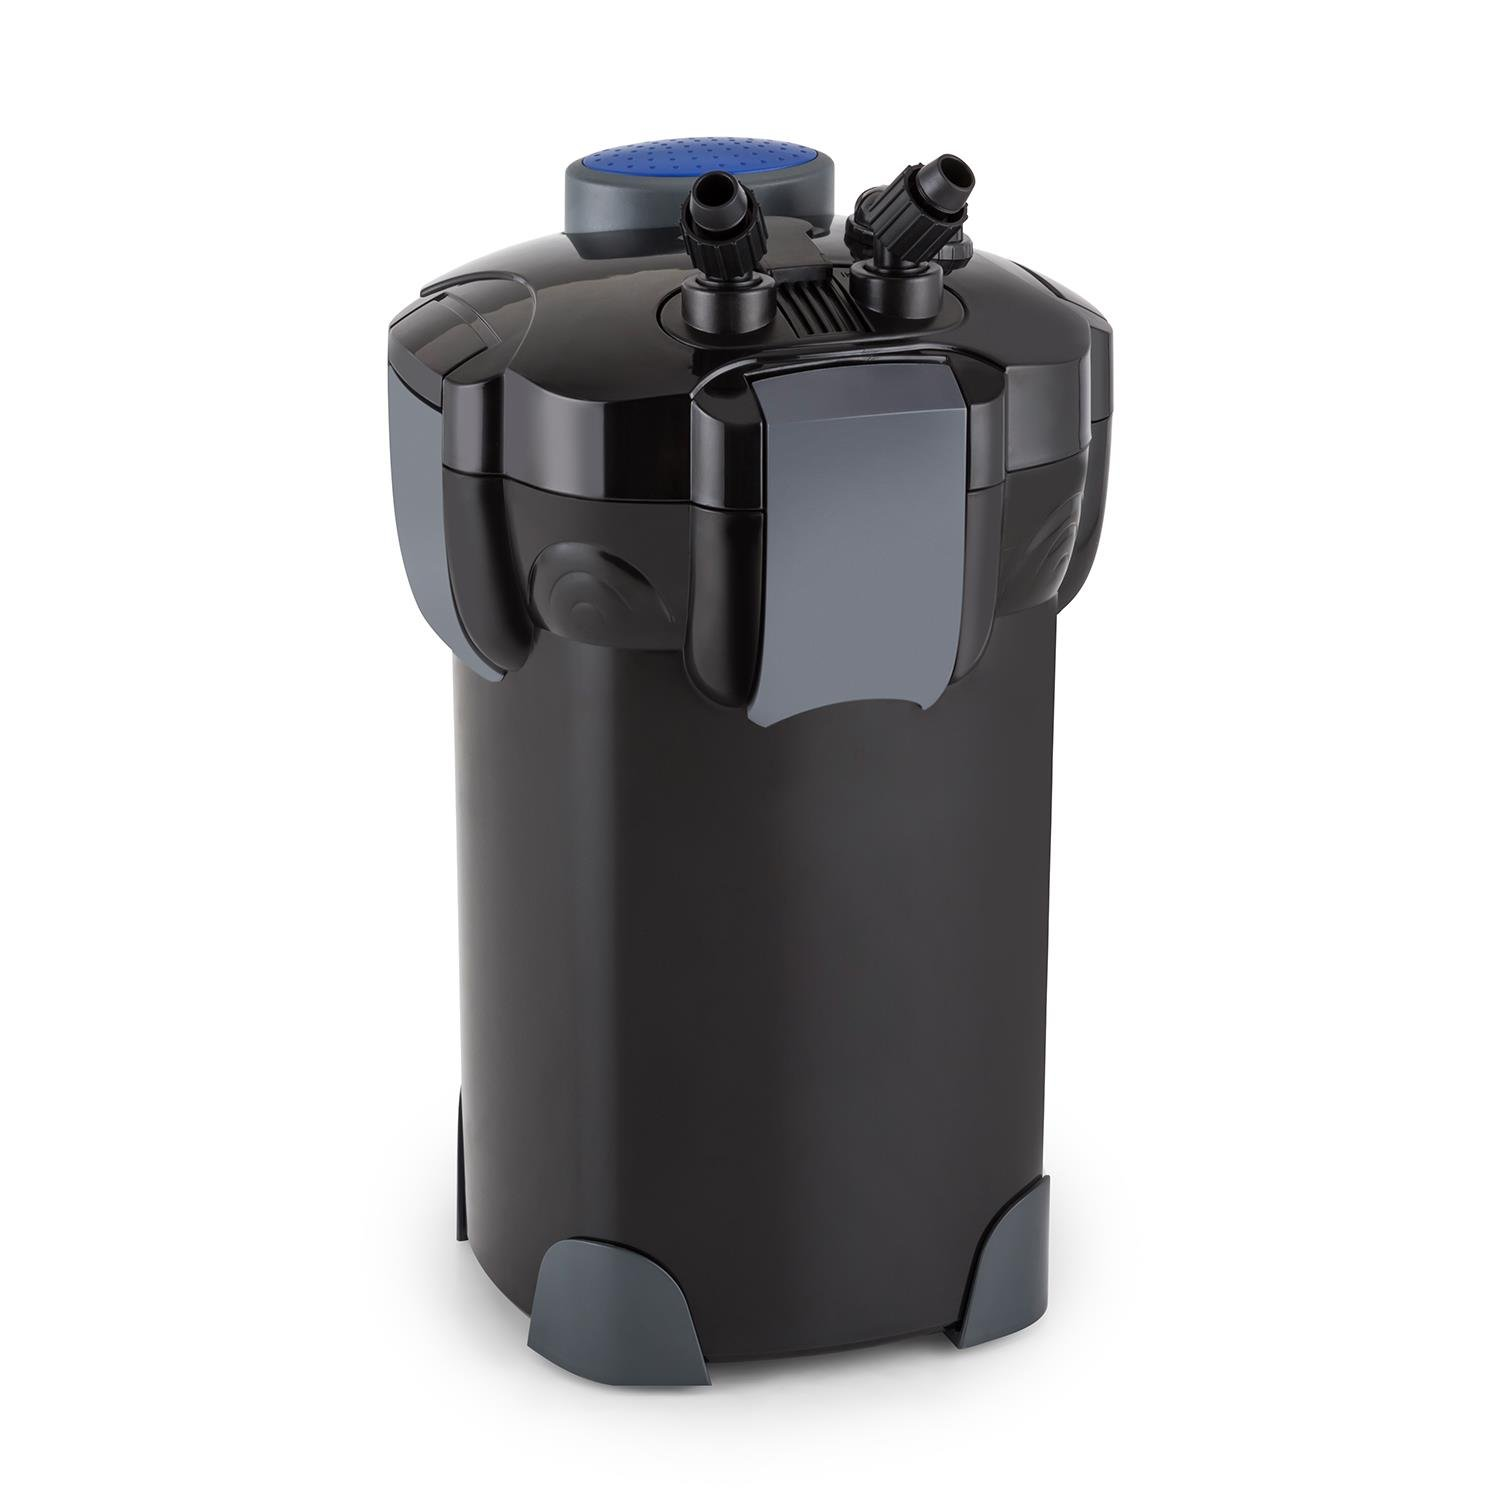 18 Waldbeck Clearflow 18 Aquarium Outdoor Filter • 18W • 4-Stage Filter • 1000 l   h • Quiet • Economical • Easy Cleaning • Coupling System • Removable Filter Baskets • Fresh and Salt Water • Black